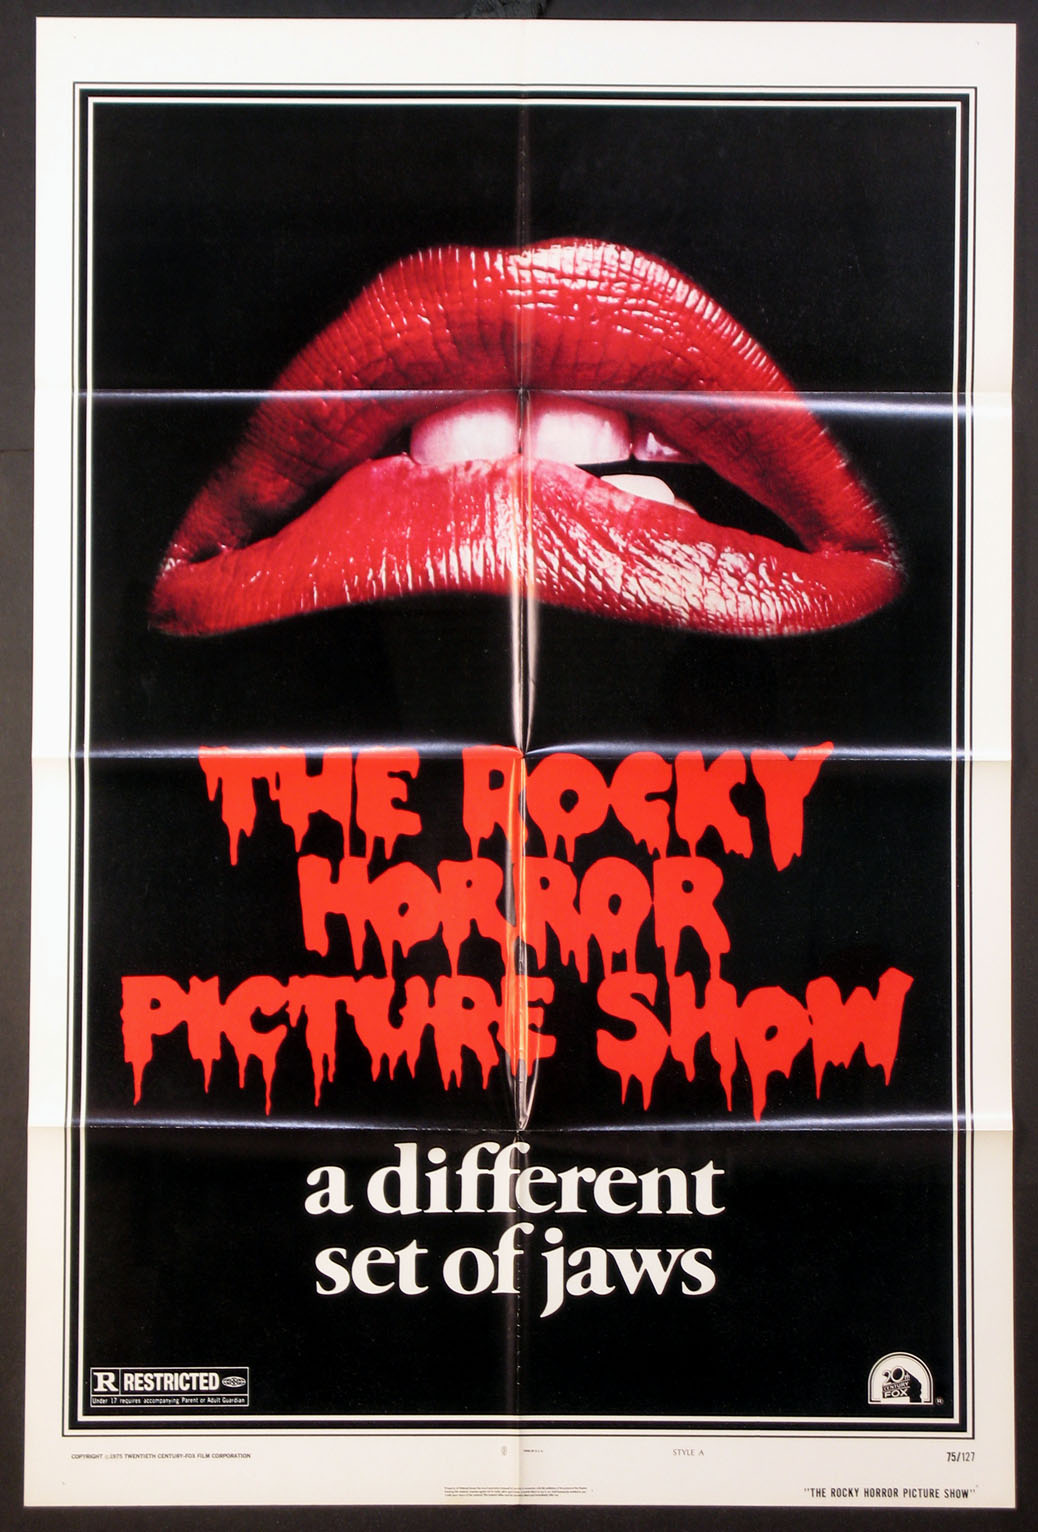 ROCKY HORROR PICTURE SHOW @ FilmPosters.com